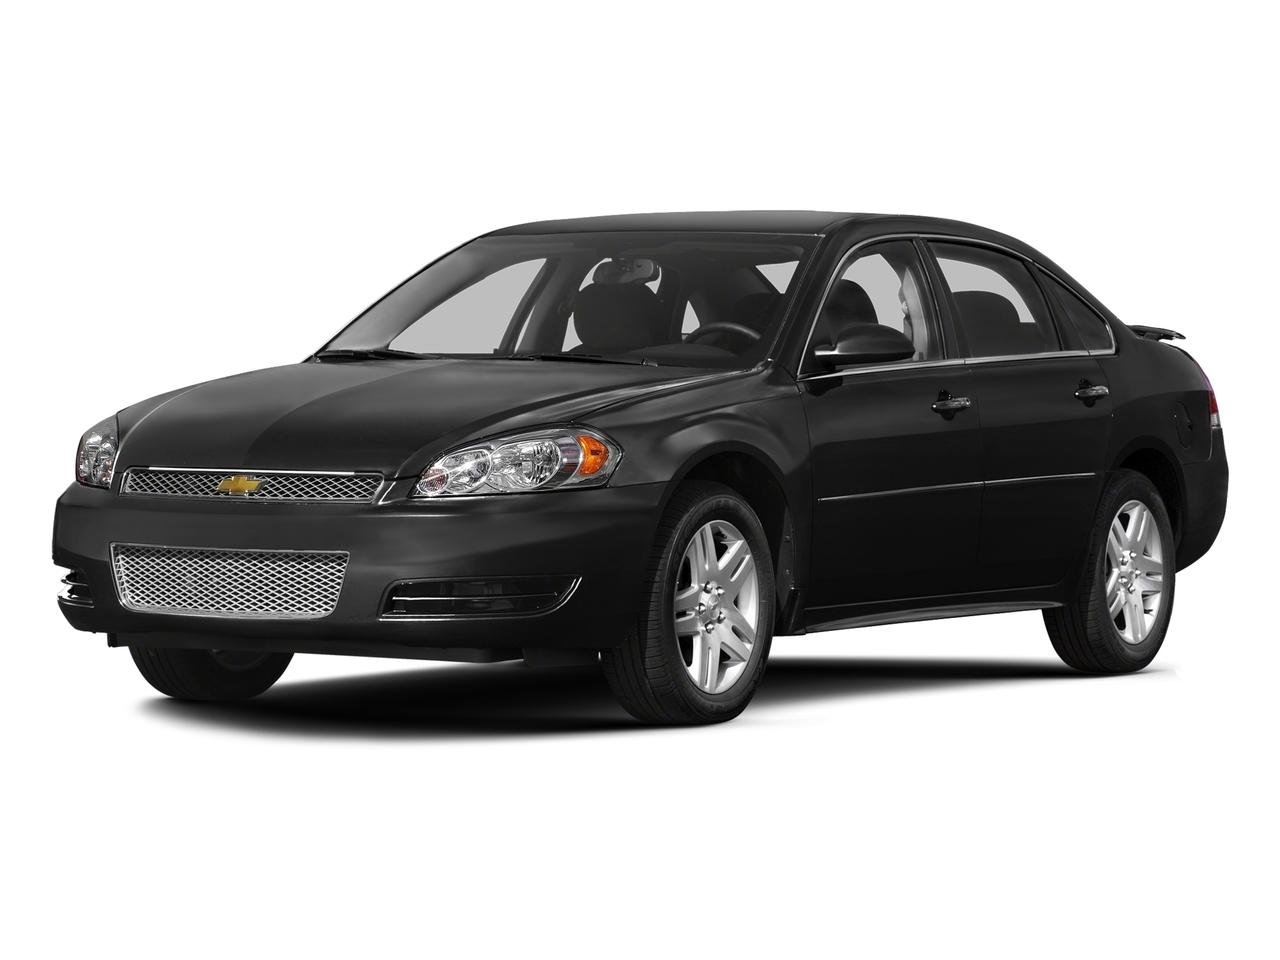 2016 Chevrolet Impala Limited Vehicle Photo in Colorado Springs, CO 80905